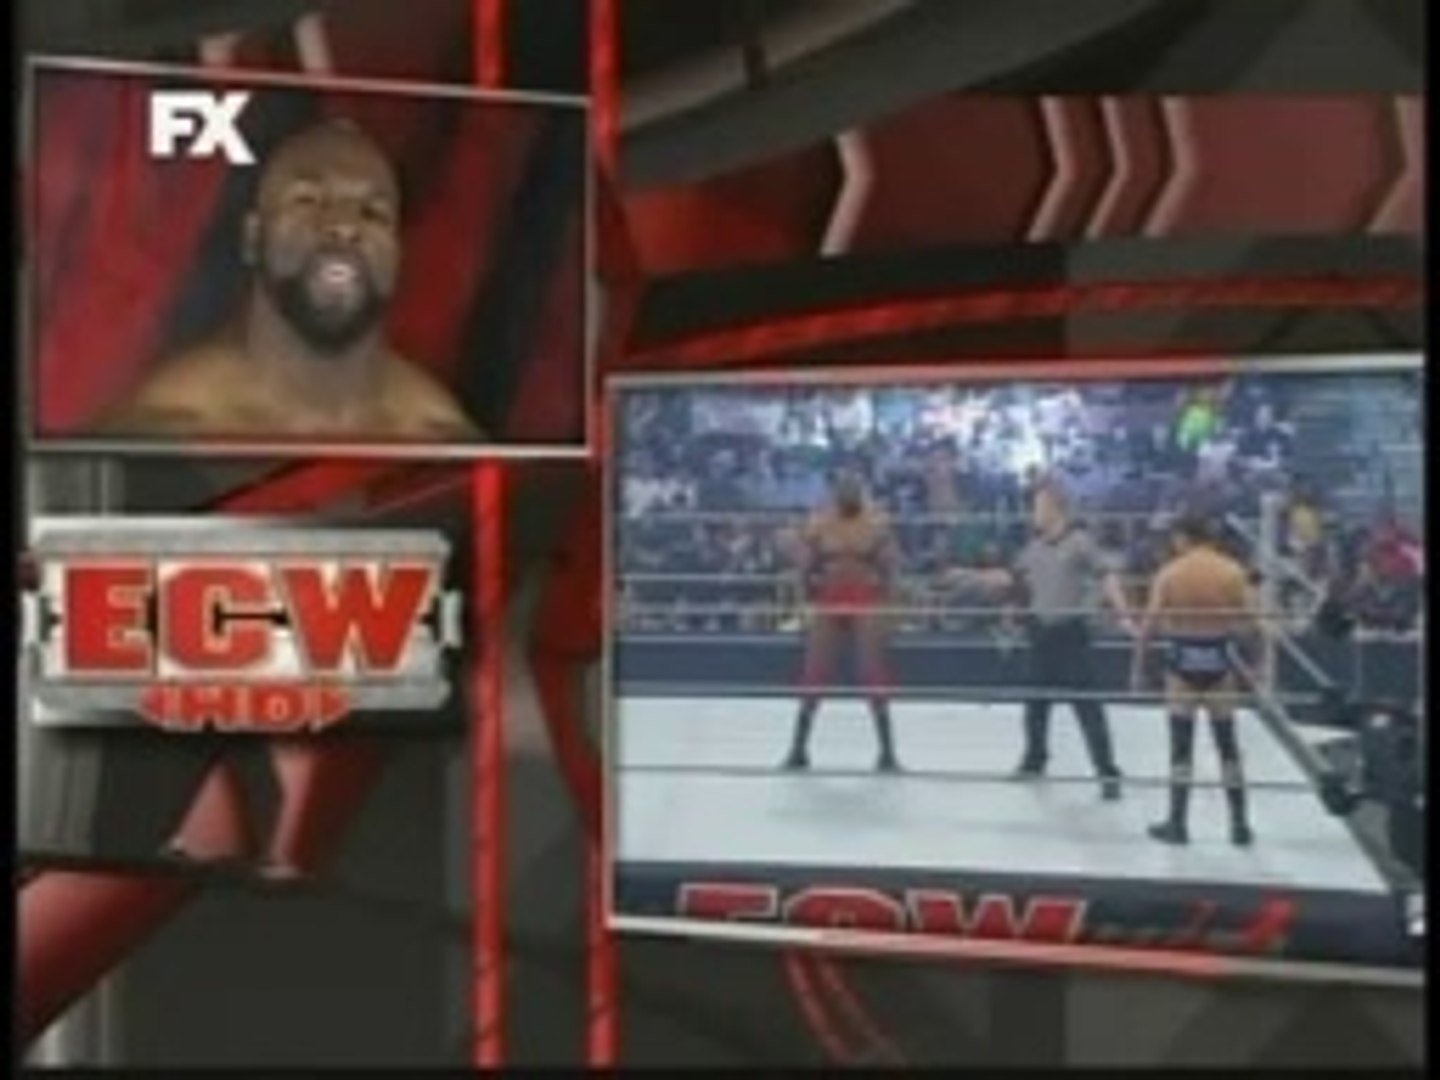 ECW 2009 Raw Rebound,Ezekiel Jackson vs Jack Meridol,the hurricane Helms Salvo a Una Productora,Comm